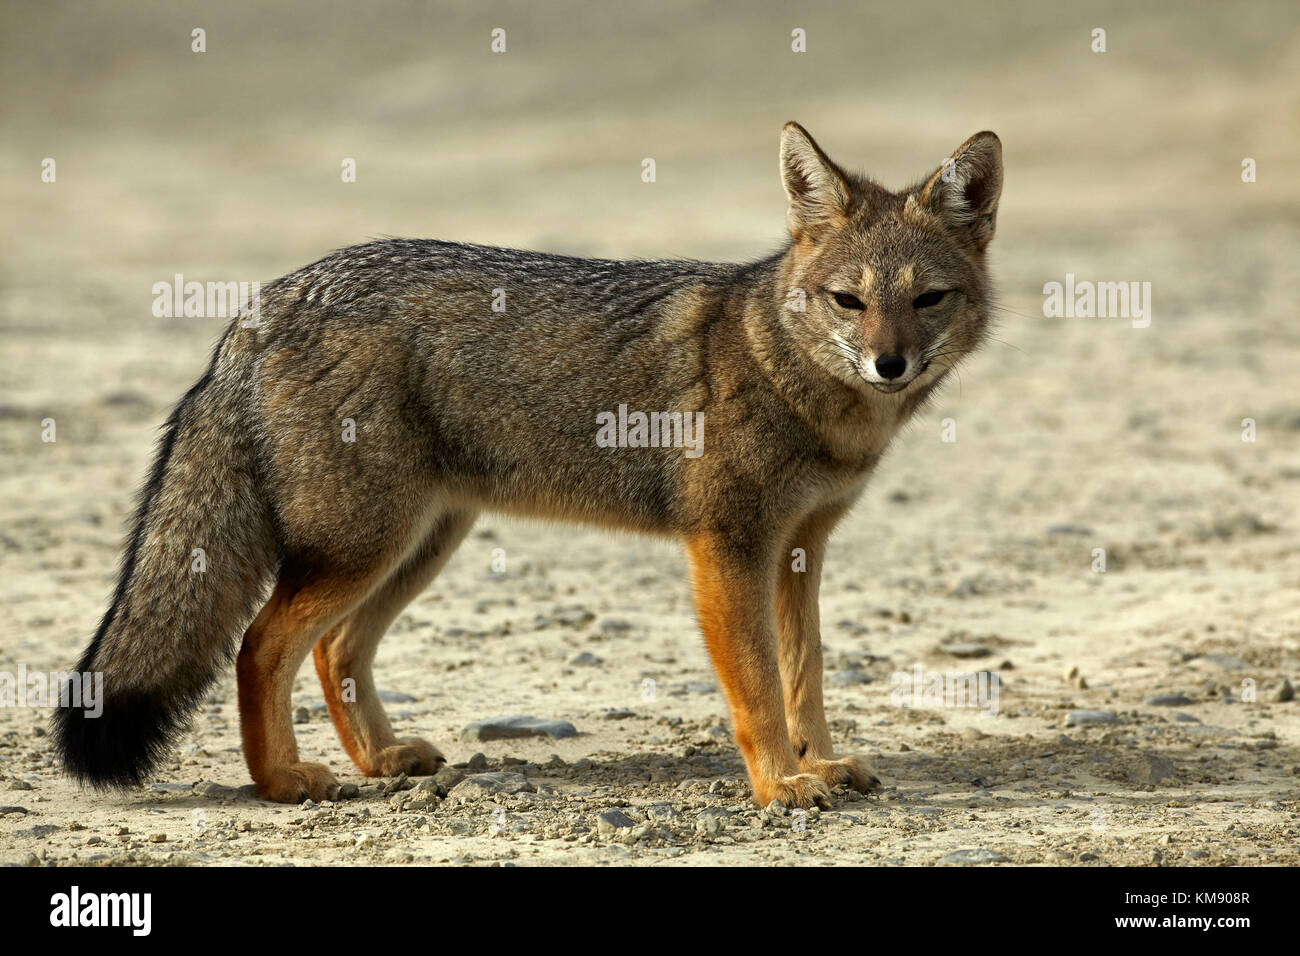 South American gray fox (Lycalopex griseus), Patagonia, Argentina, South America - Stock Image